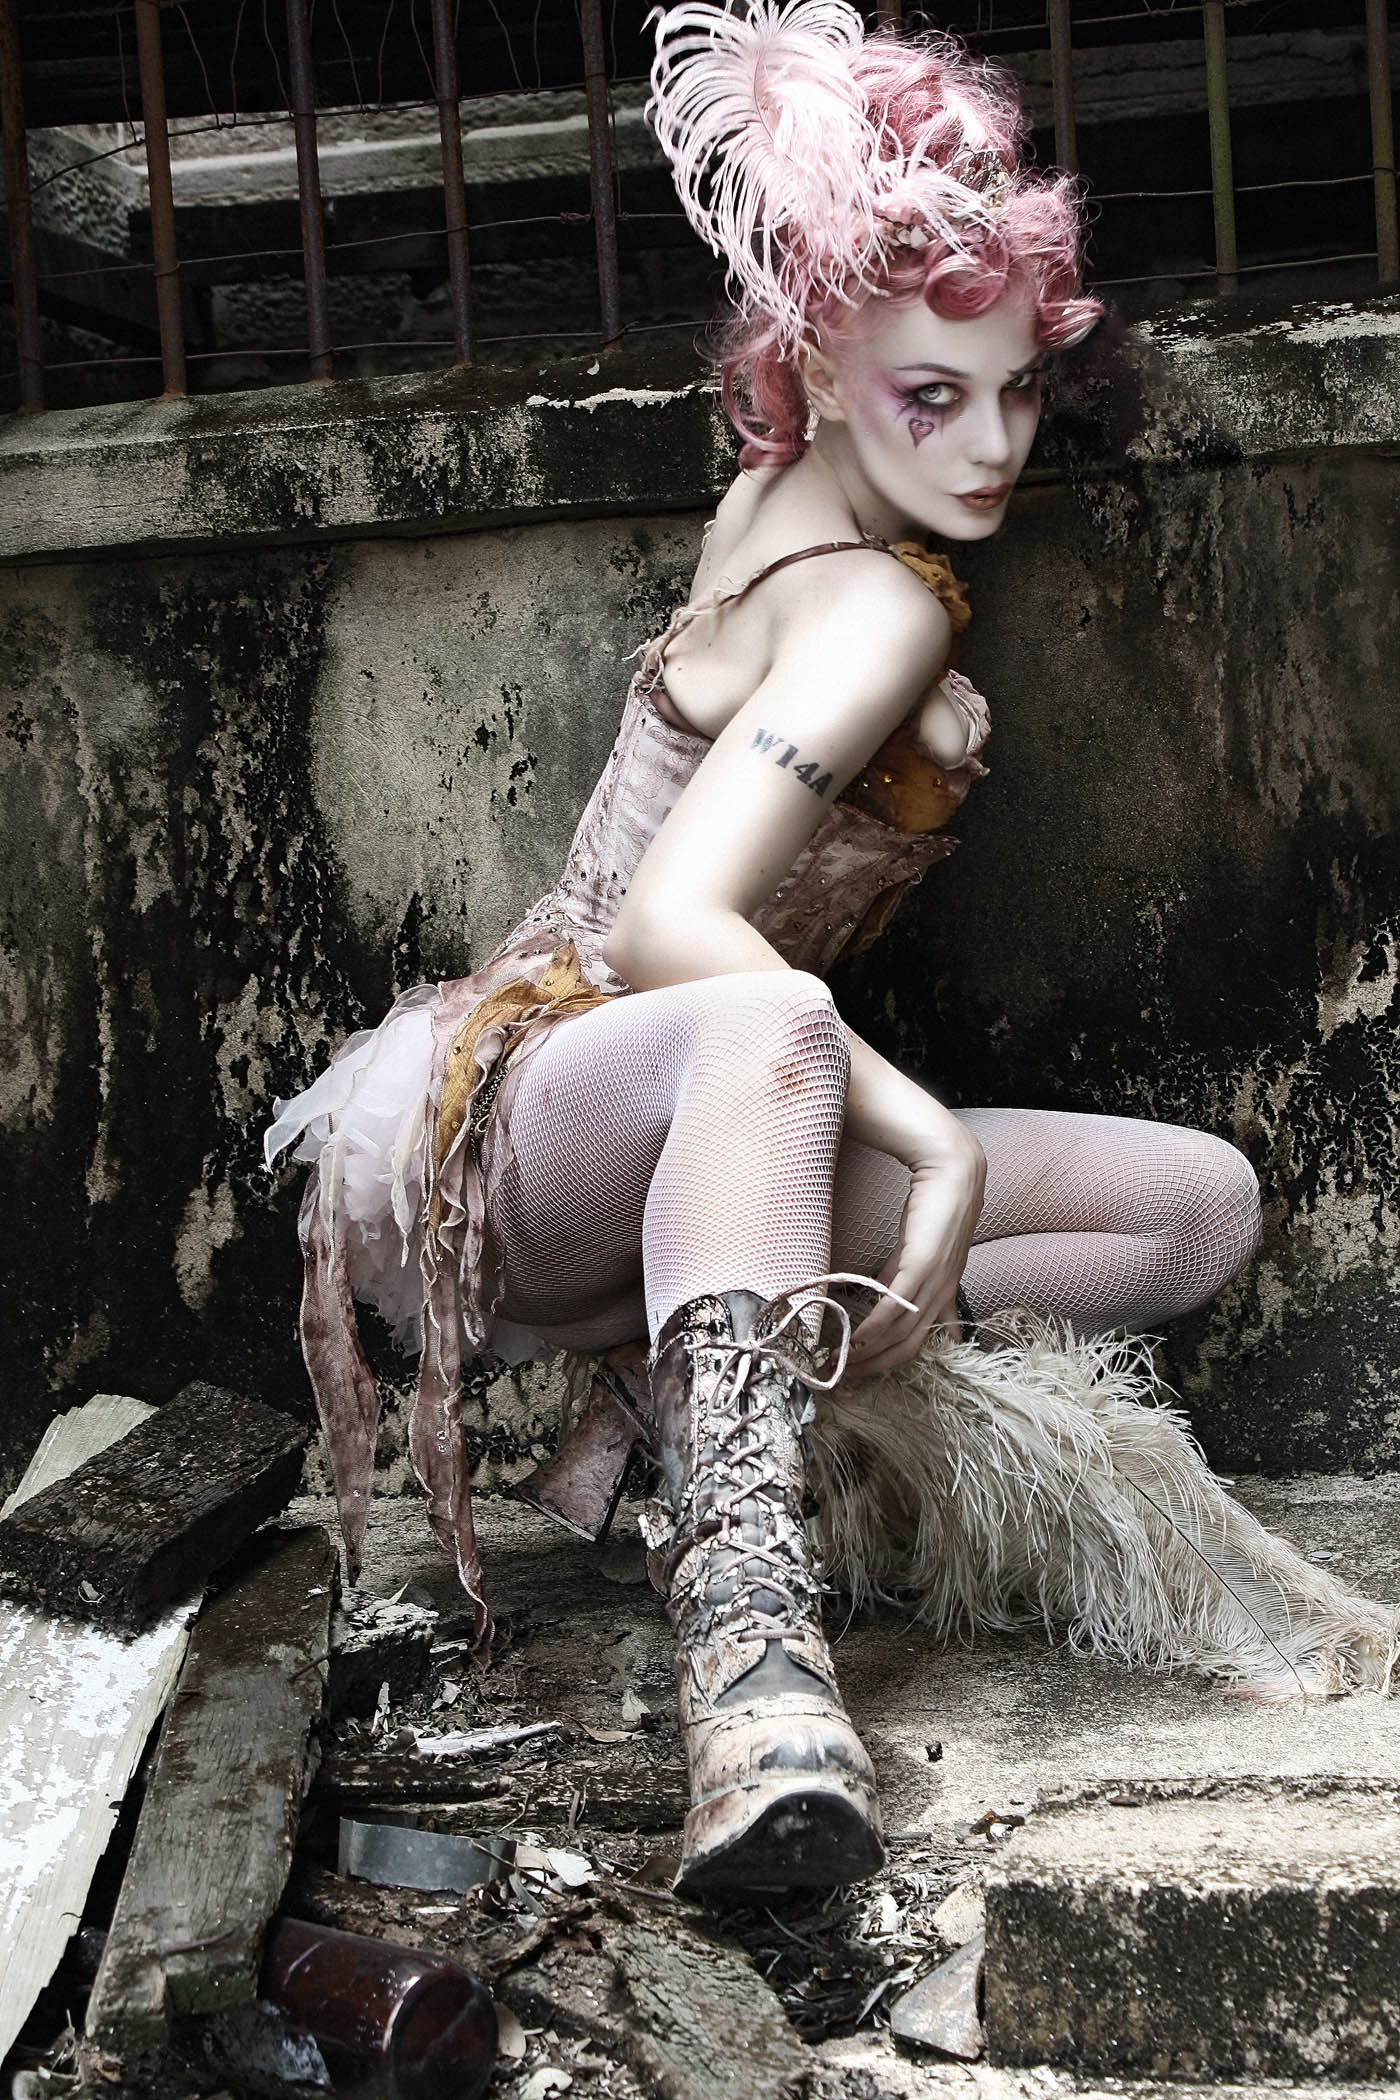 Emilie Autumn by Melissa King